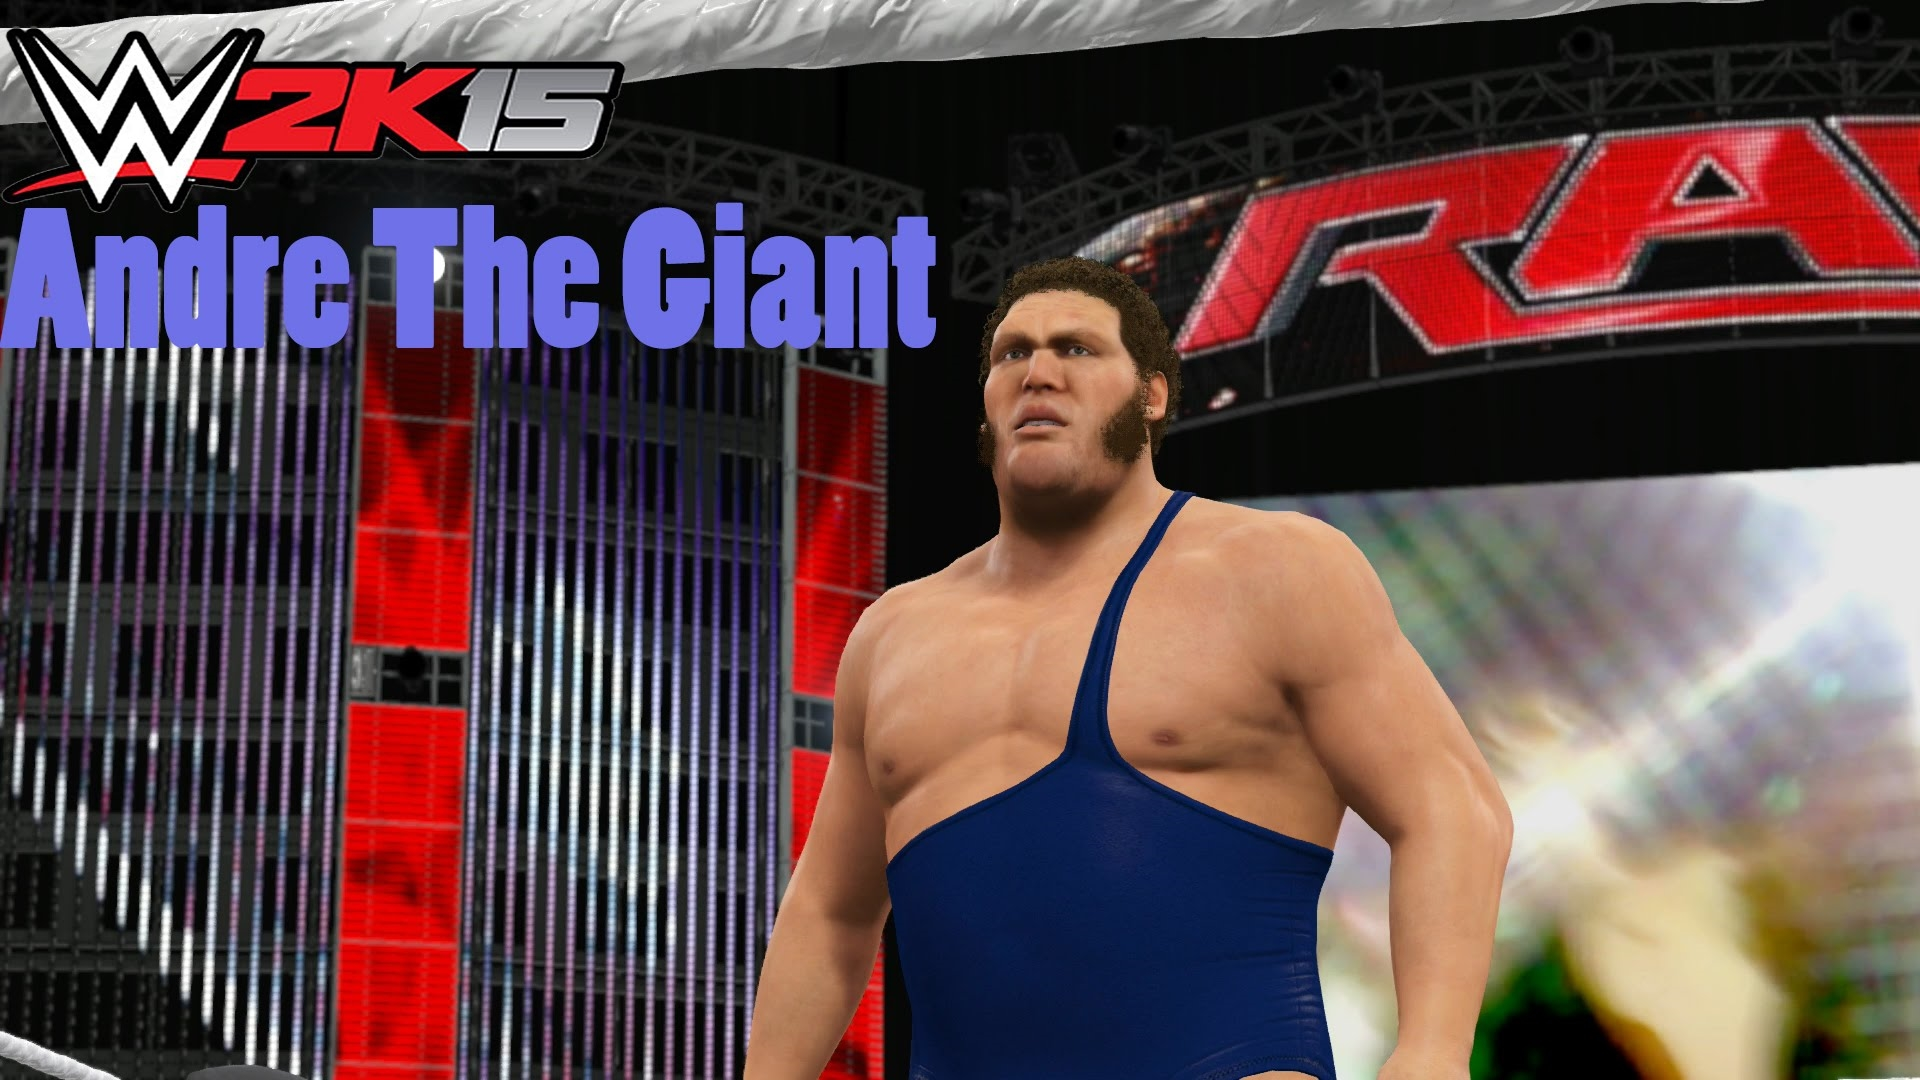 wwe andre the giant